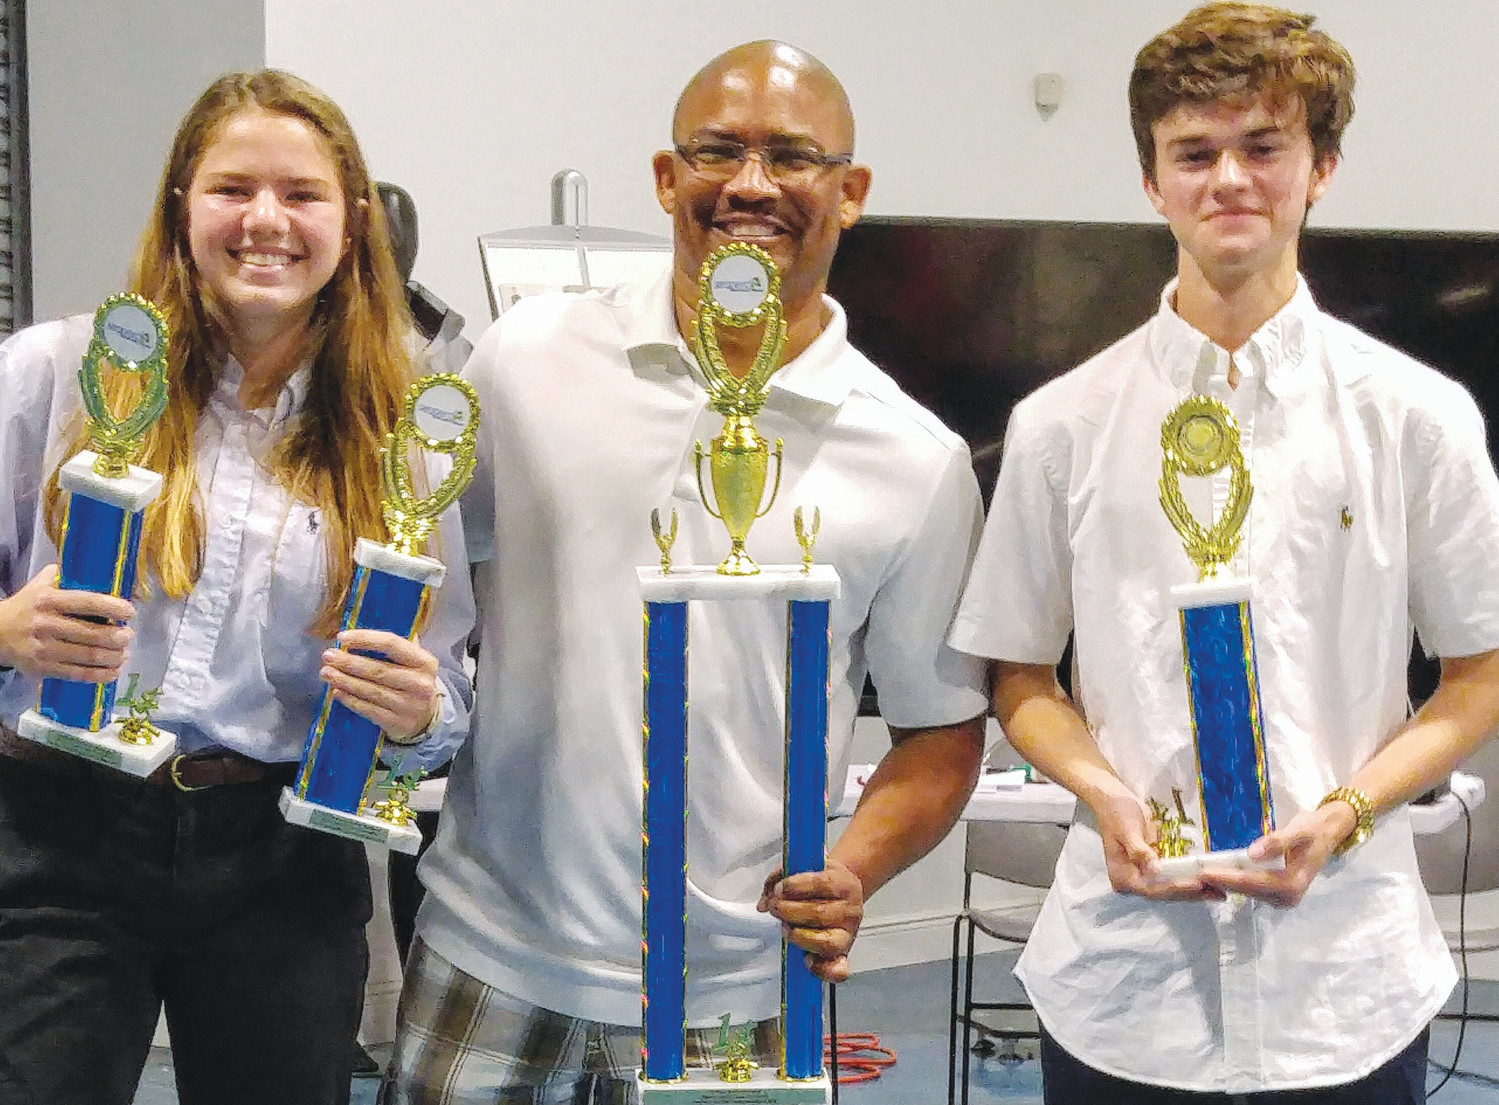 Fleming Island High sophomore Jordan Detwiler, left, stands with Gordon Connell, executive director of the Marine Industry Cares Foundation and Hetwiler Halibuts teammate Austin Hughes, a freshman, March 10 after capturing first place at the 2018 Marine Industries Cares Foundation SeaPerch Qualifier, held in Fort Lauderdale.